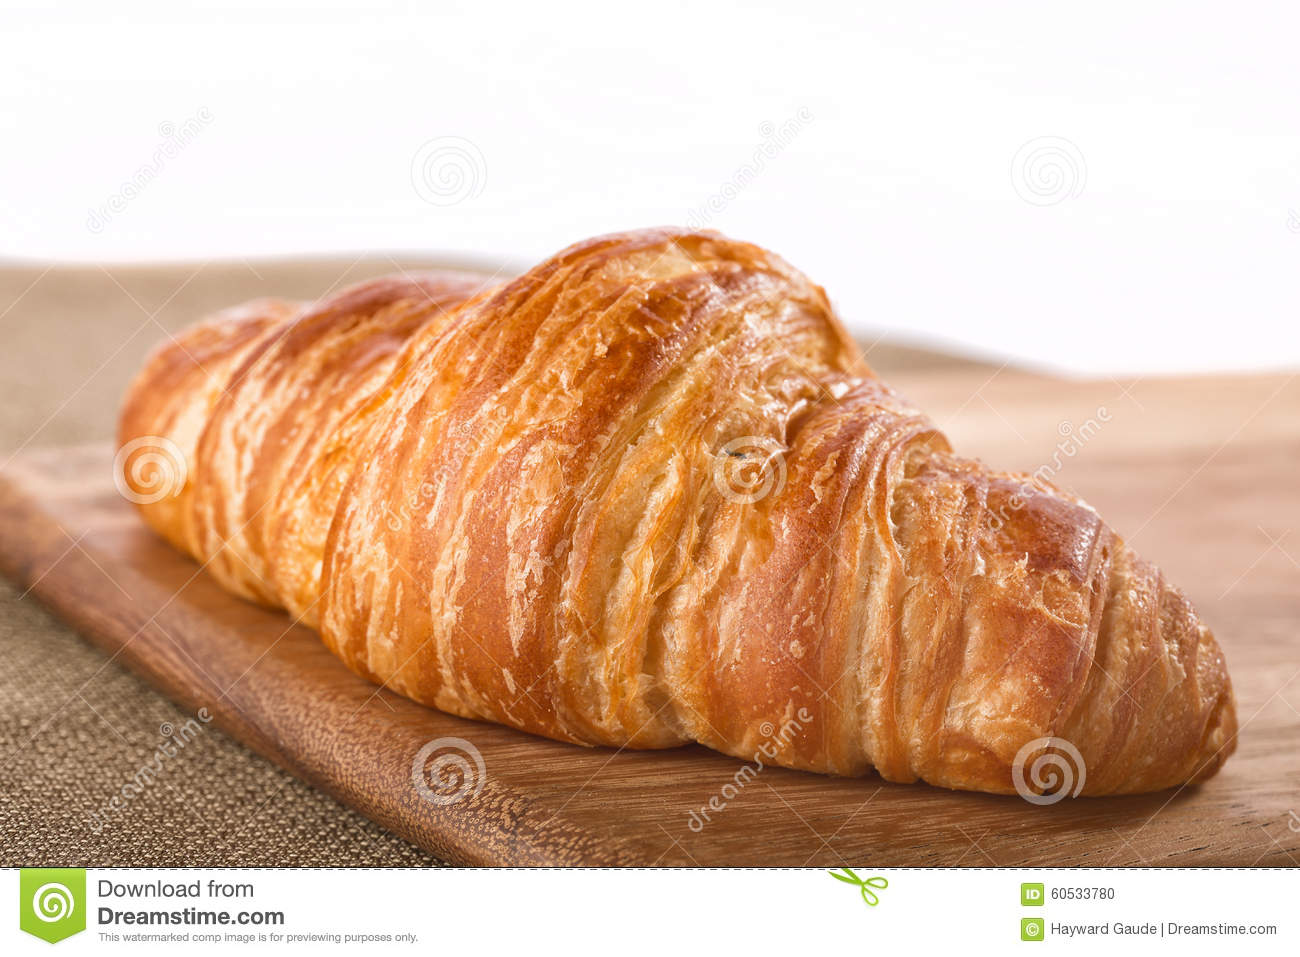 Whole Flaky French Croissant On A Board Stock Photo - Image: 60533780